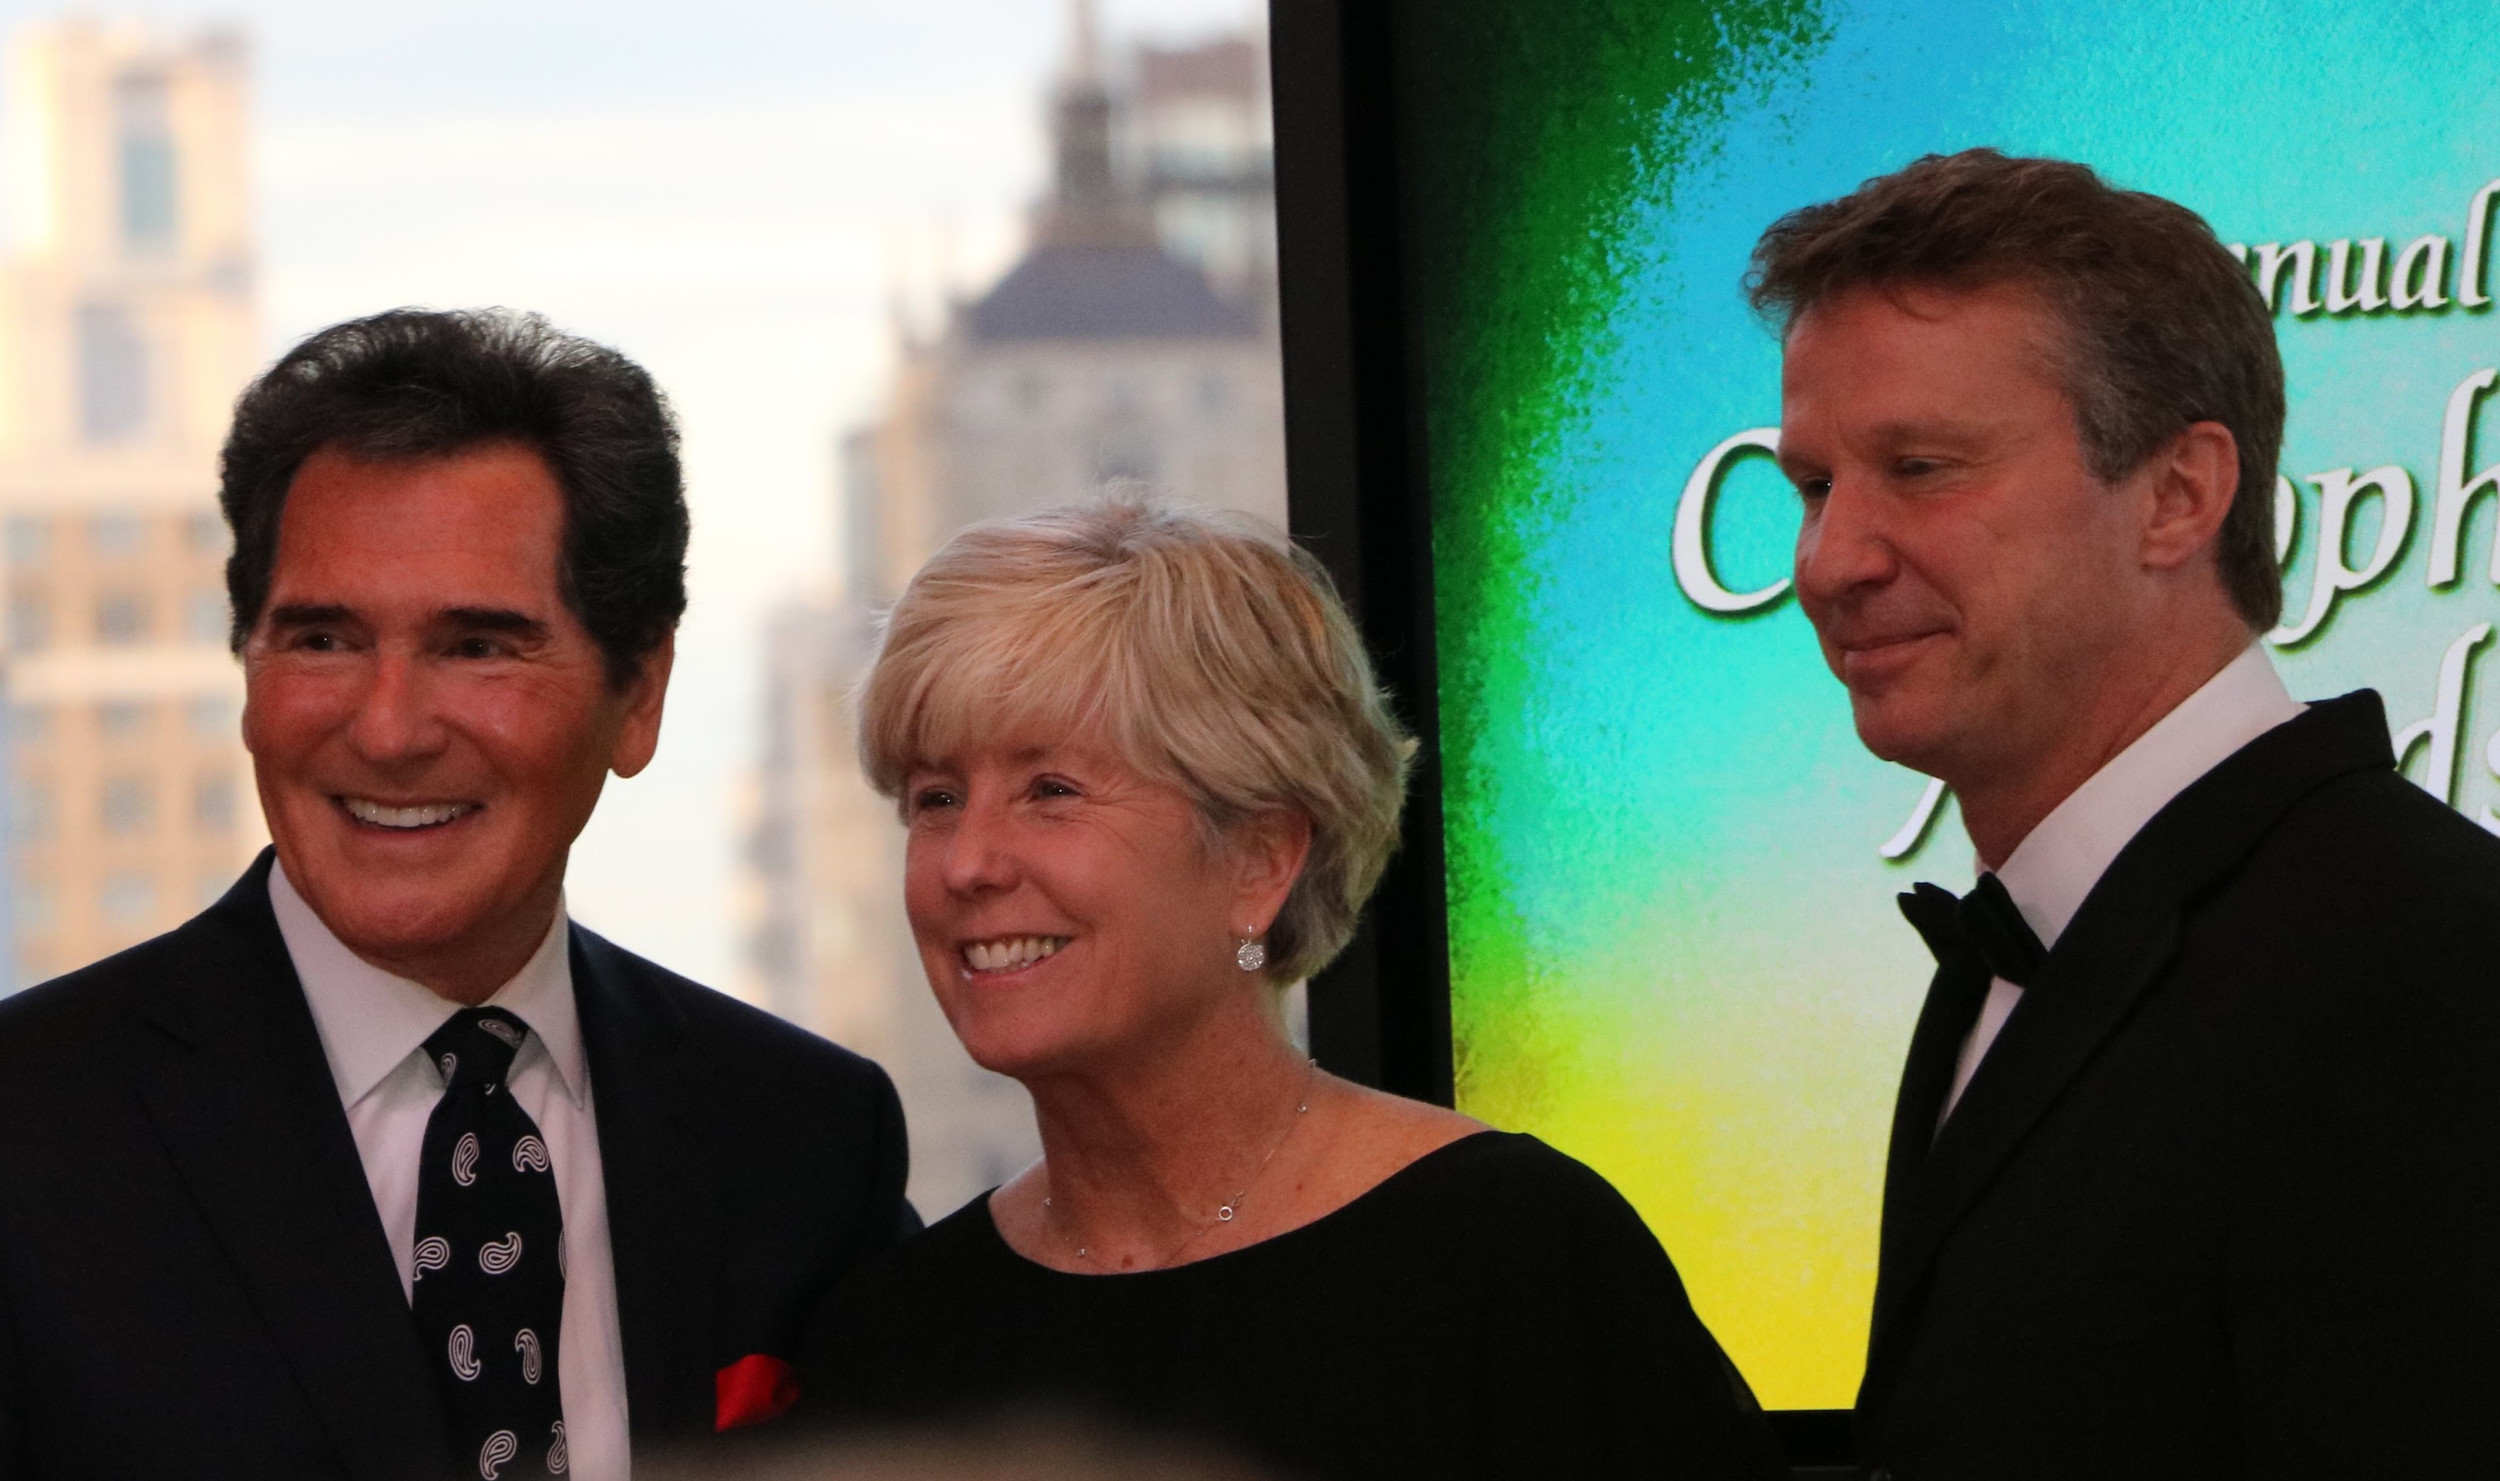 Malverne Mayor Patti Ann McDonald with Fox 5 anchor Ernie Anastos, left, and Dr. Chuck Dietzen at the Christopher Awards ceremony last week in Manhattan.